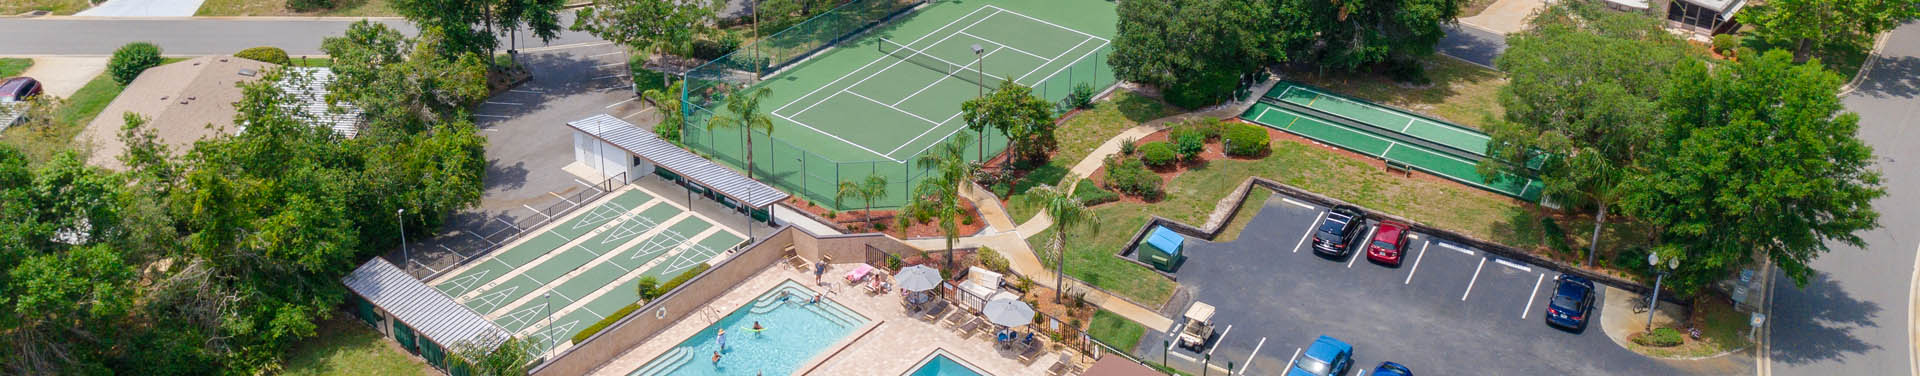 Photo of tennis court, pools, parking lot, shuffle board courts, and trees taken from a drone in the sky looking down